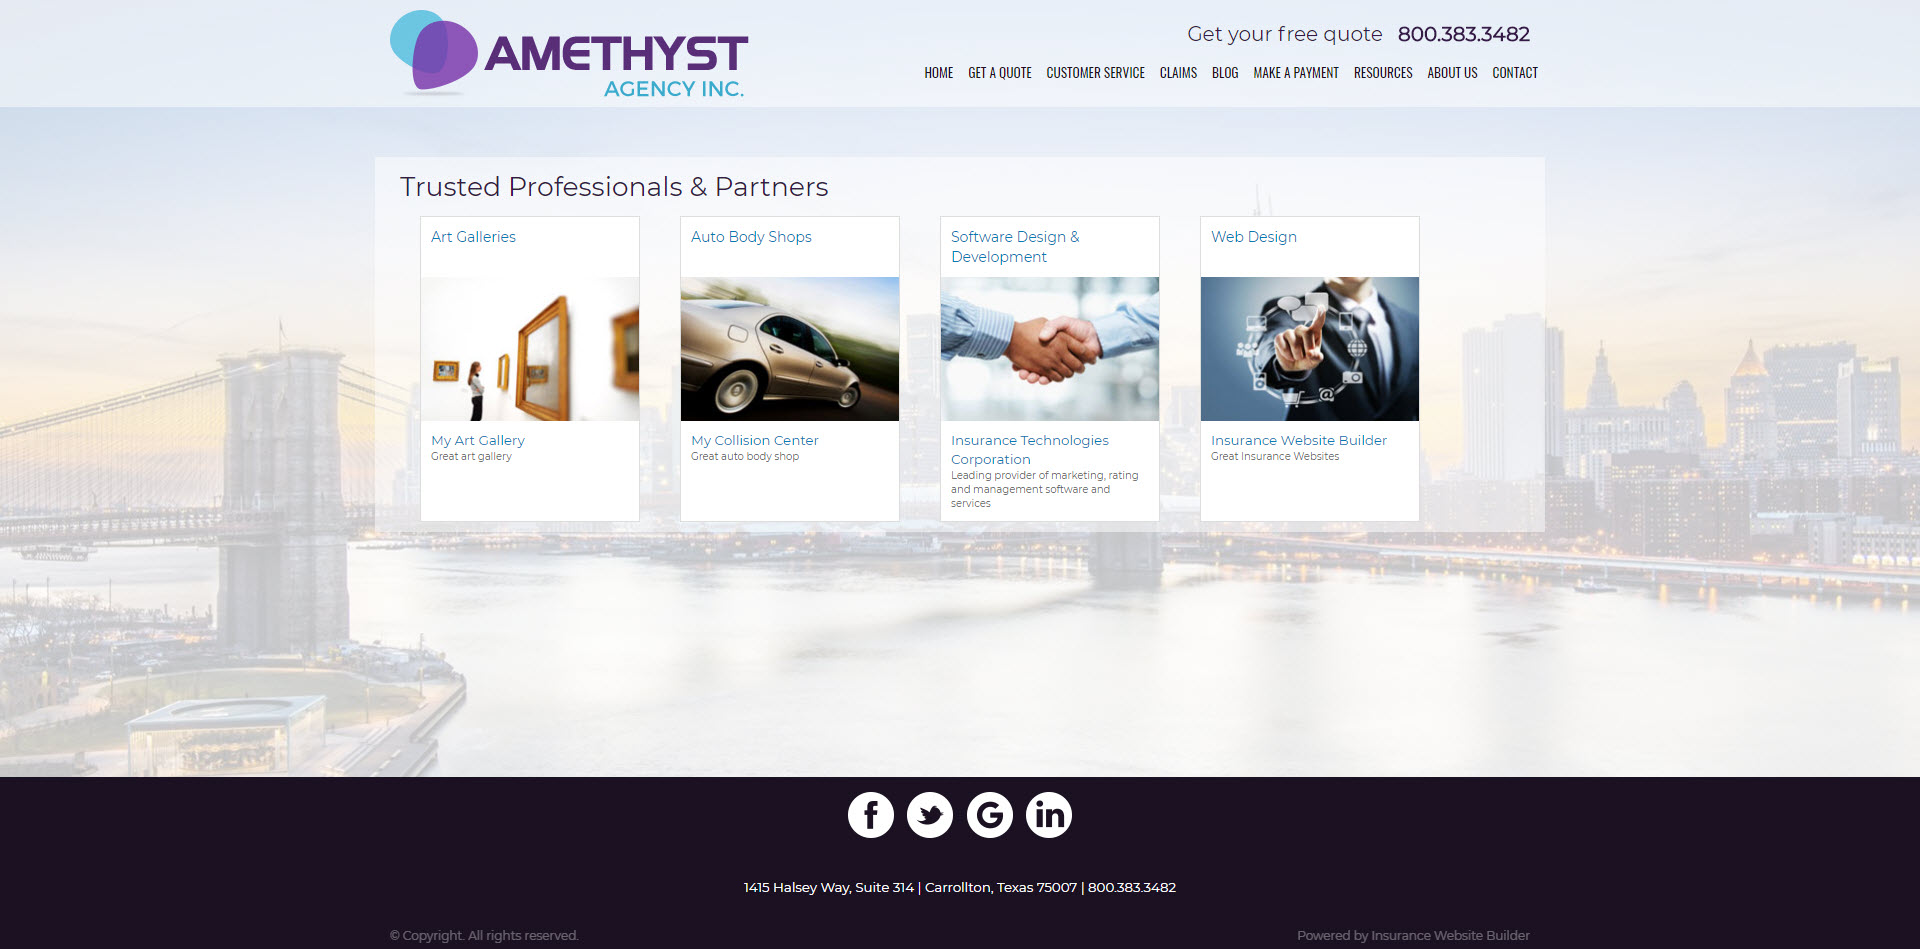 Amethyst partner page screenshot